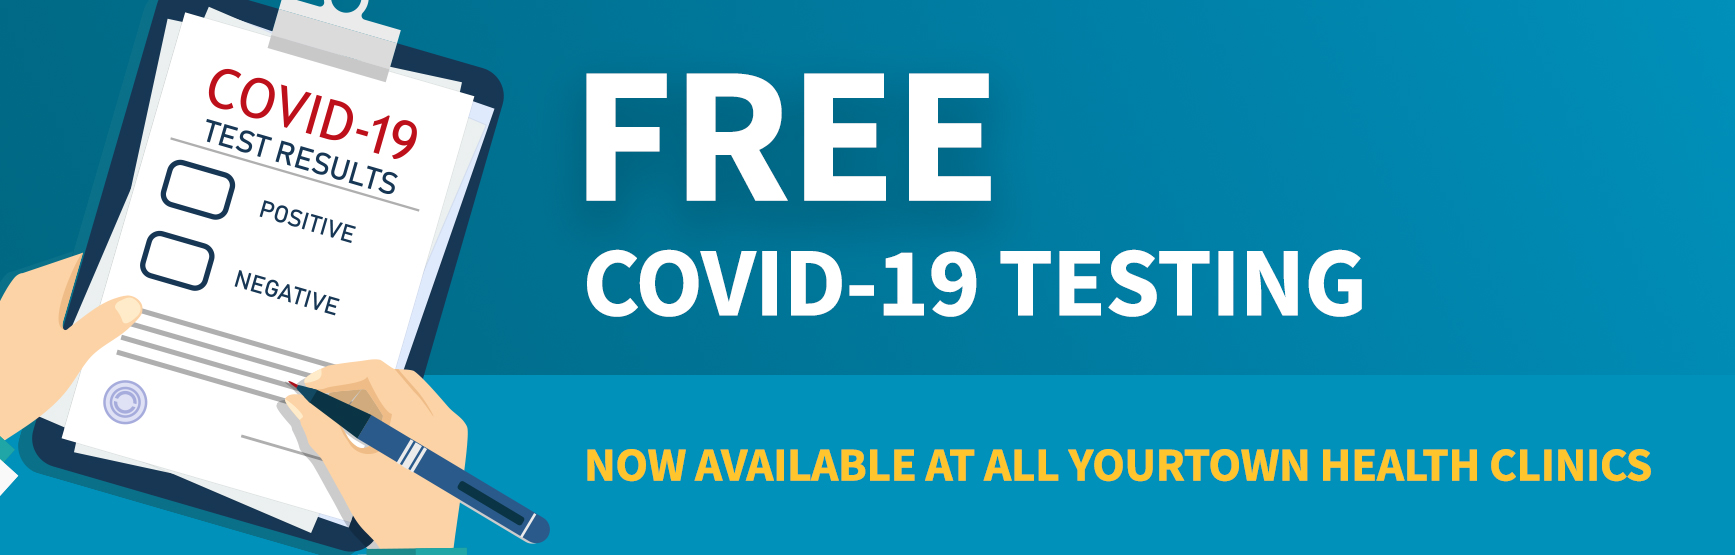 Free COVID-19 Testing: Now Available at All YourTown Health Clinics.